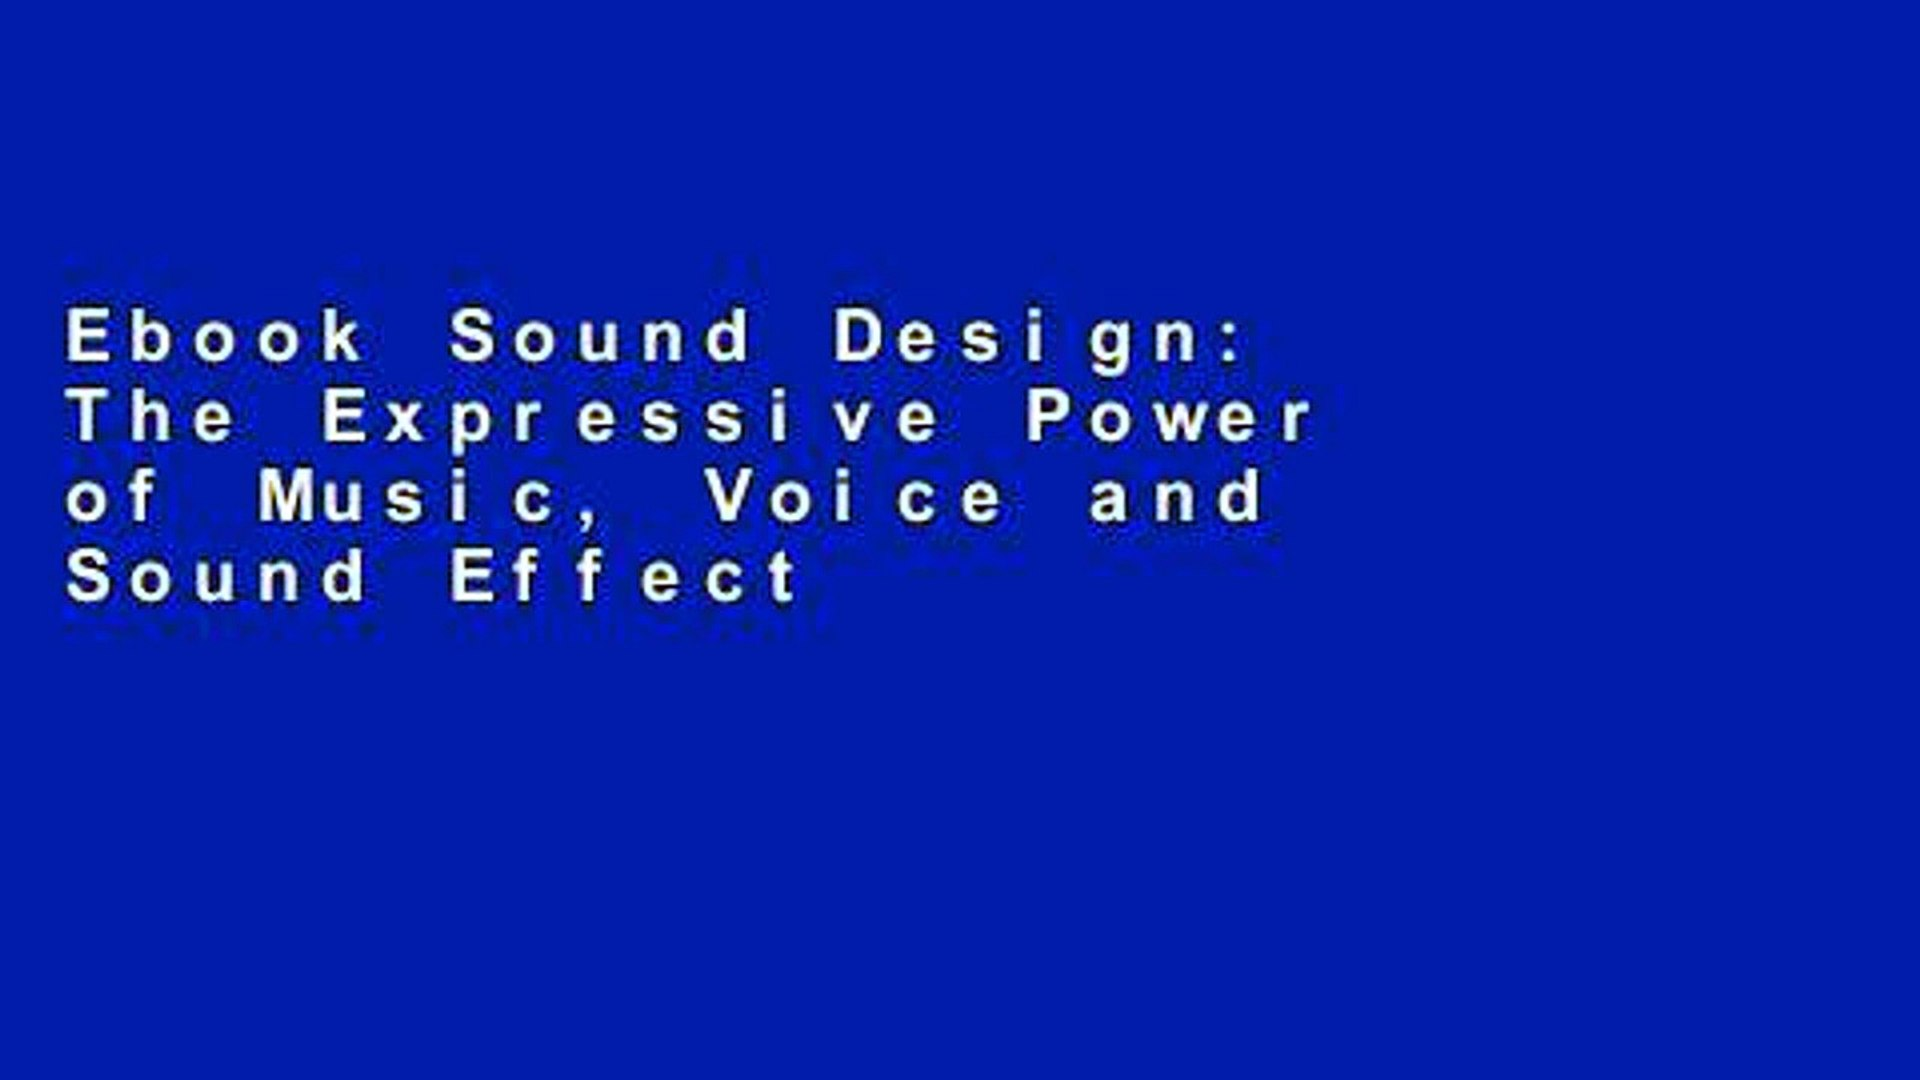 Ebook Sound Design: The Expressive Power of Music, Voice and Sound Effects in Cinema Full